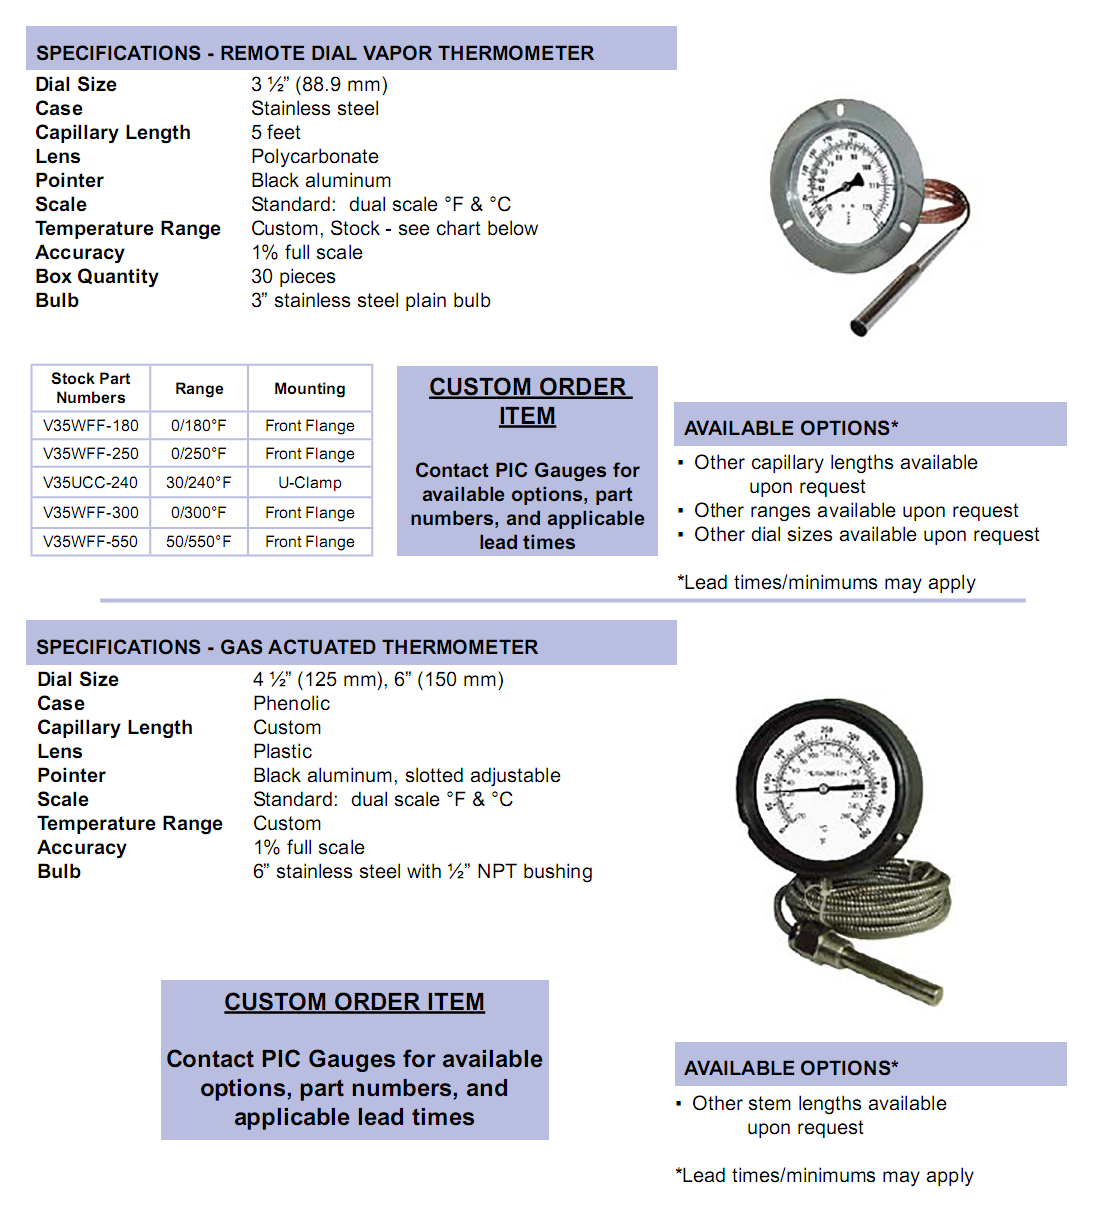 remote-dial-and-gas-actuated-thermometers-specifications